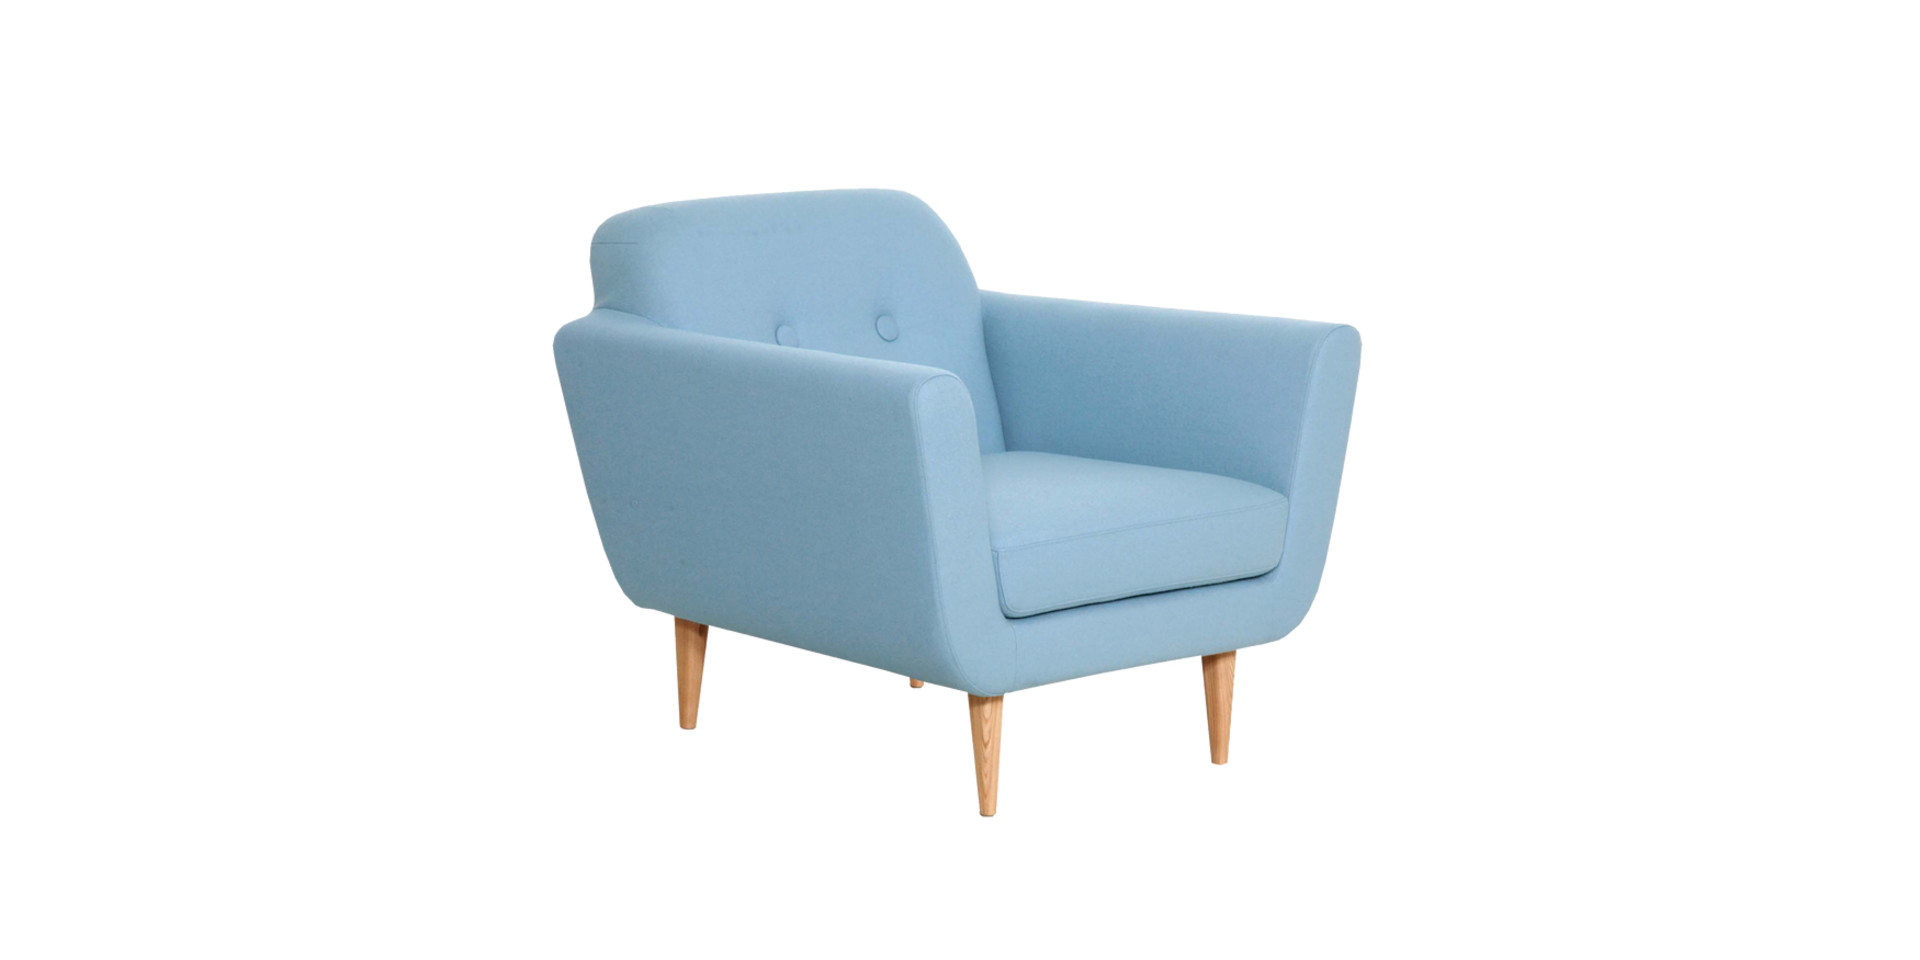 sits-otto-fauteuil-armchair_panno2048_storm_blue_2